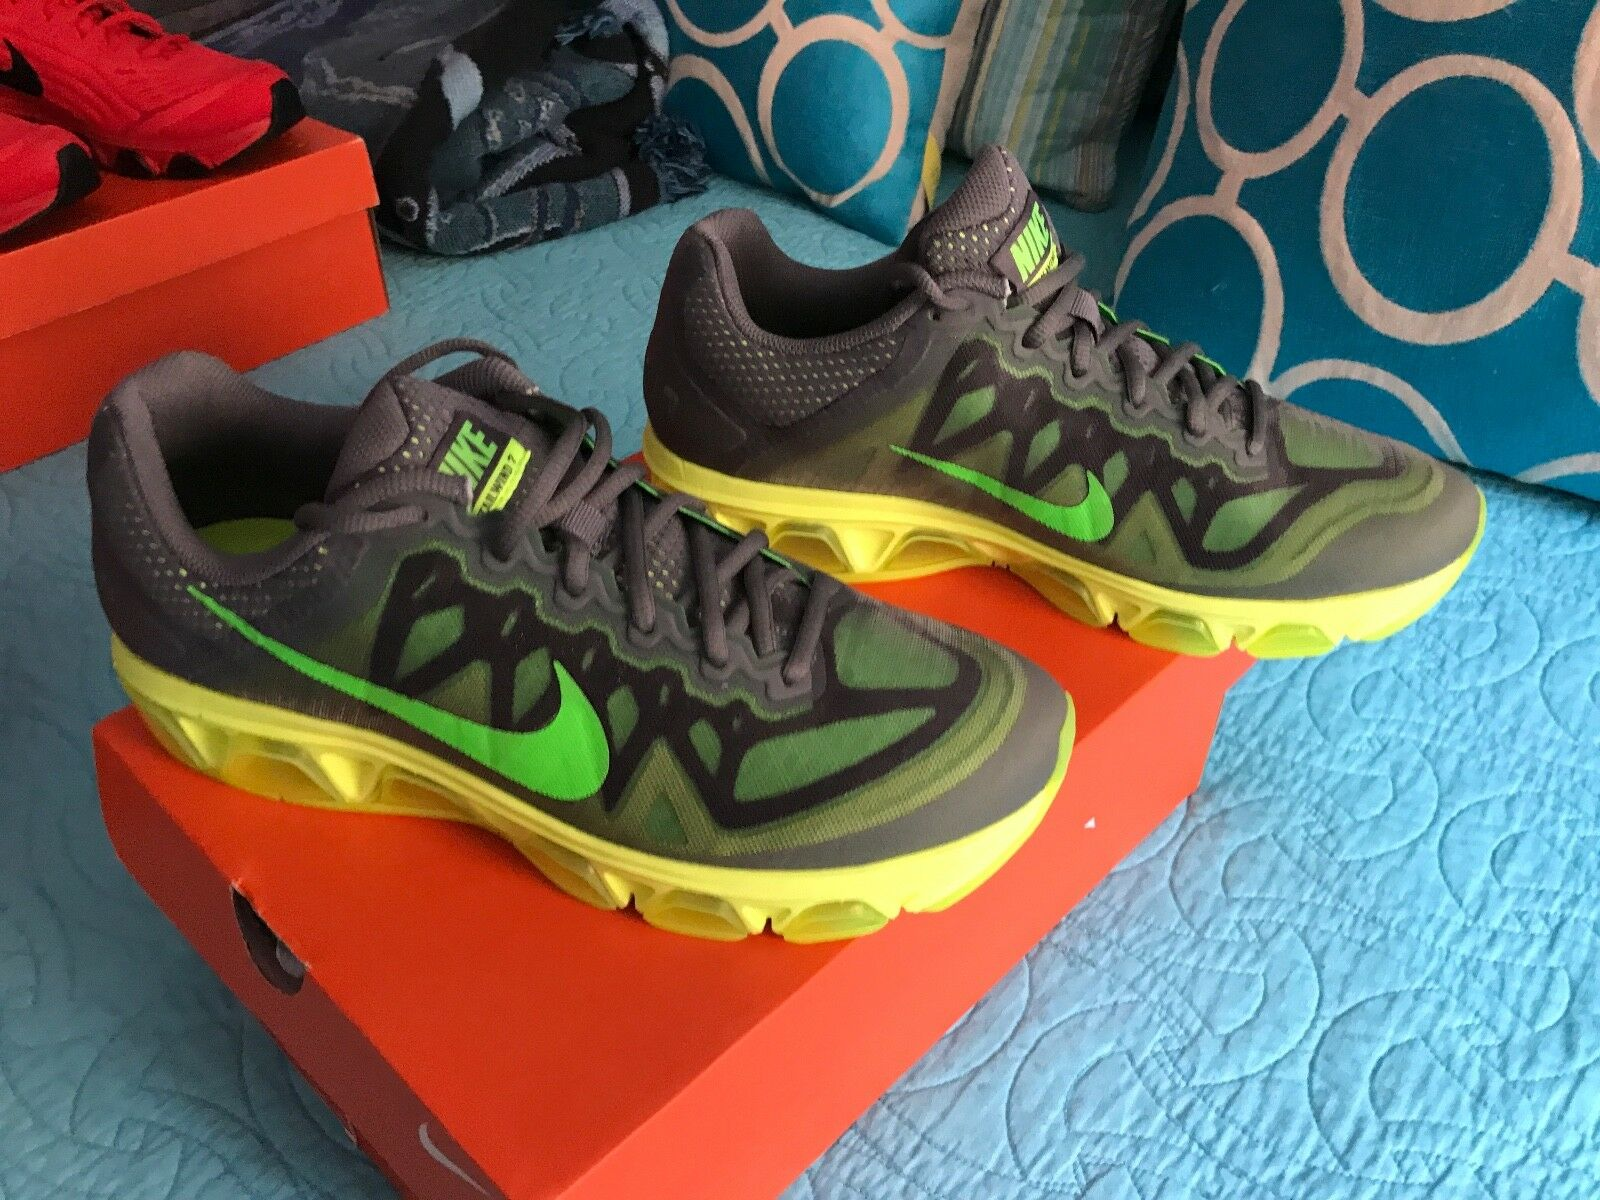 Nike mens shoes - Airmax - Yellow and Neon green - New in box - Authentic